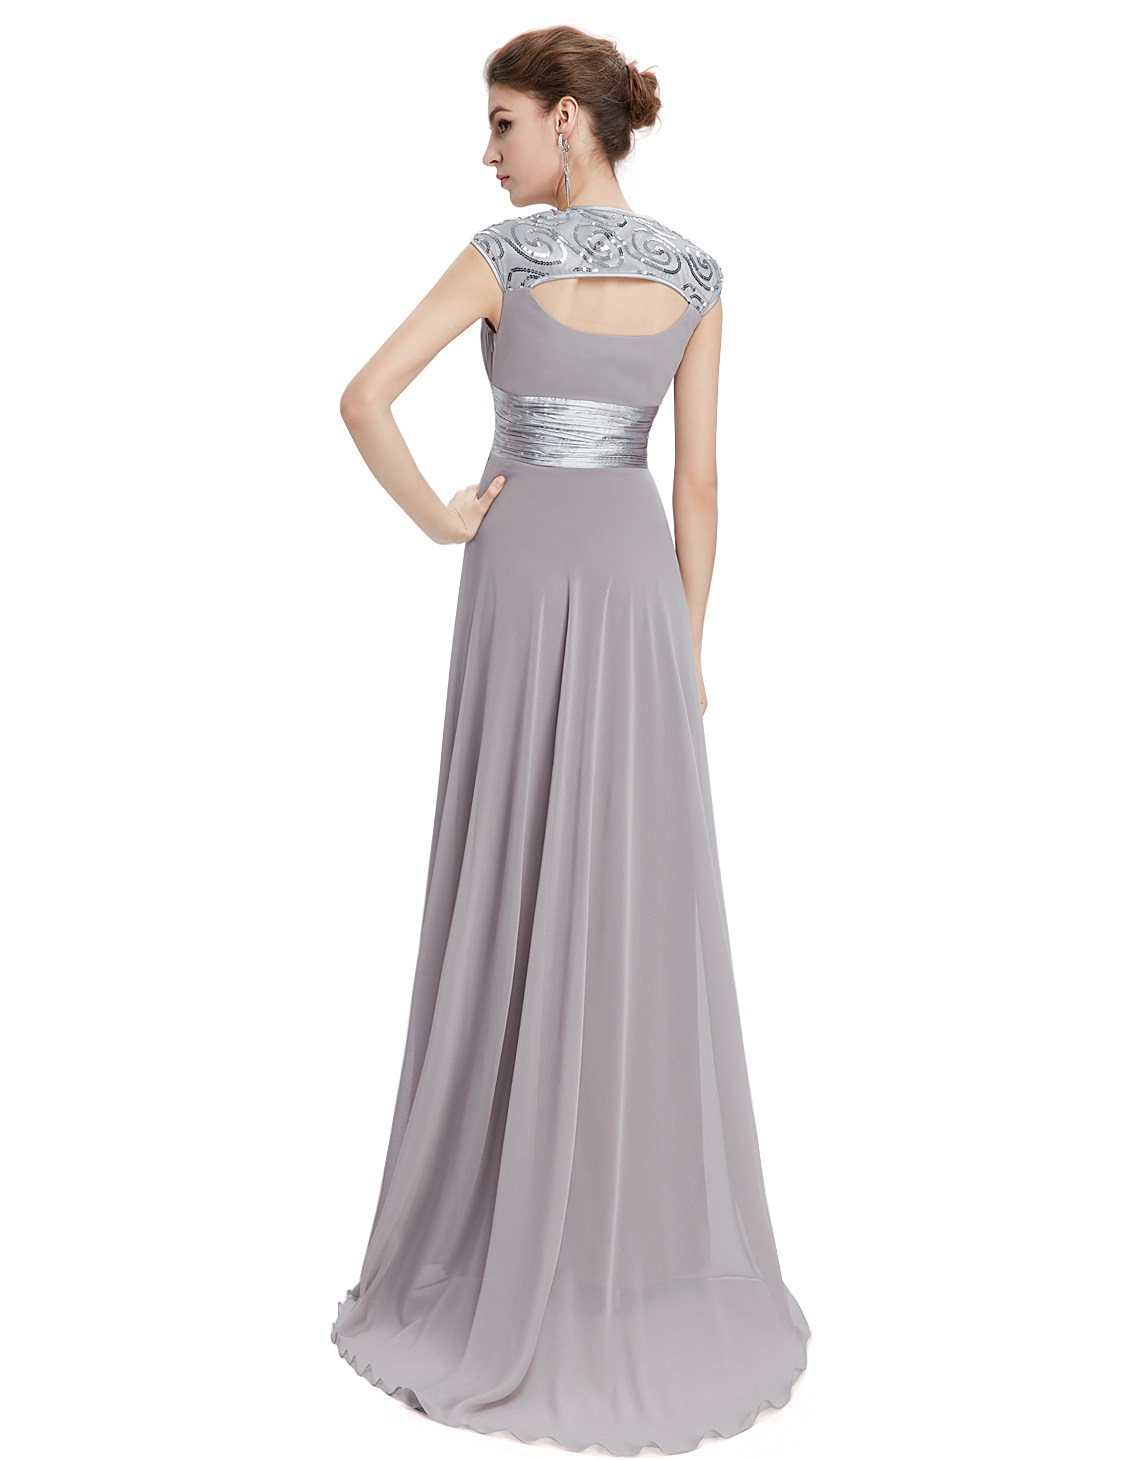 Ever-Pretty-Cap-Sleeve-Bridesmaid-Dresses-Elegant-Long-V-neck-Evening-Gown-09672 thumbnail 21